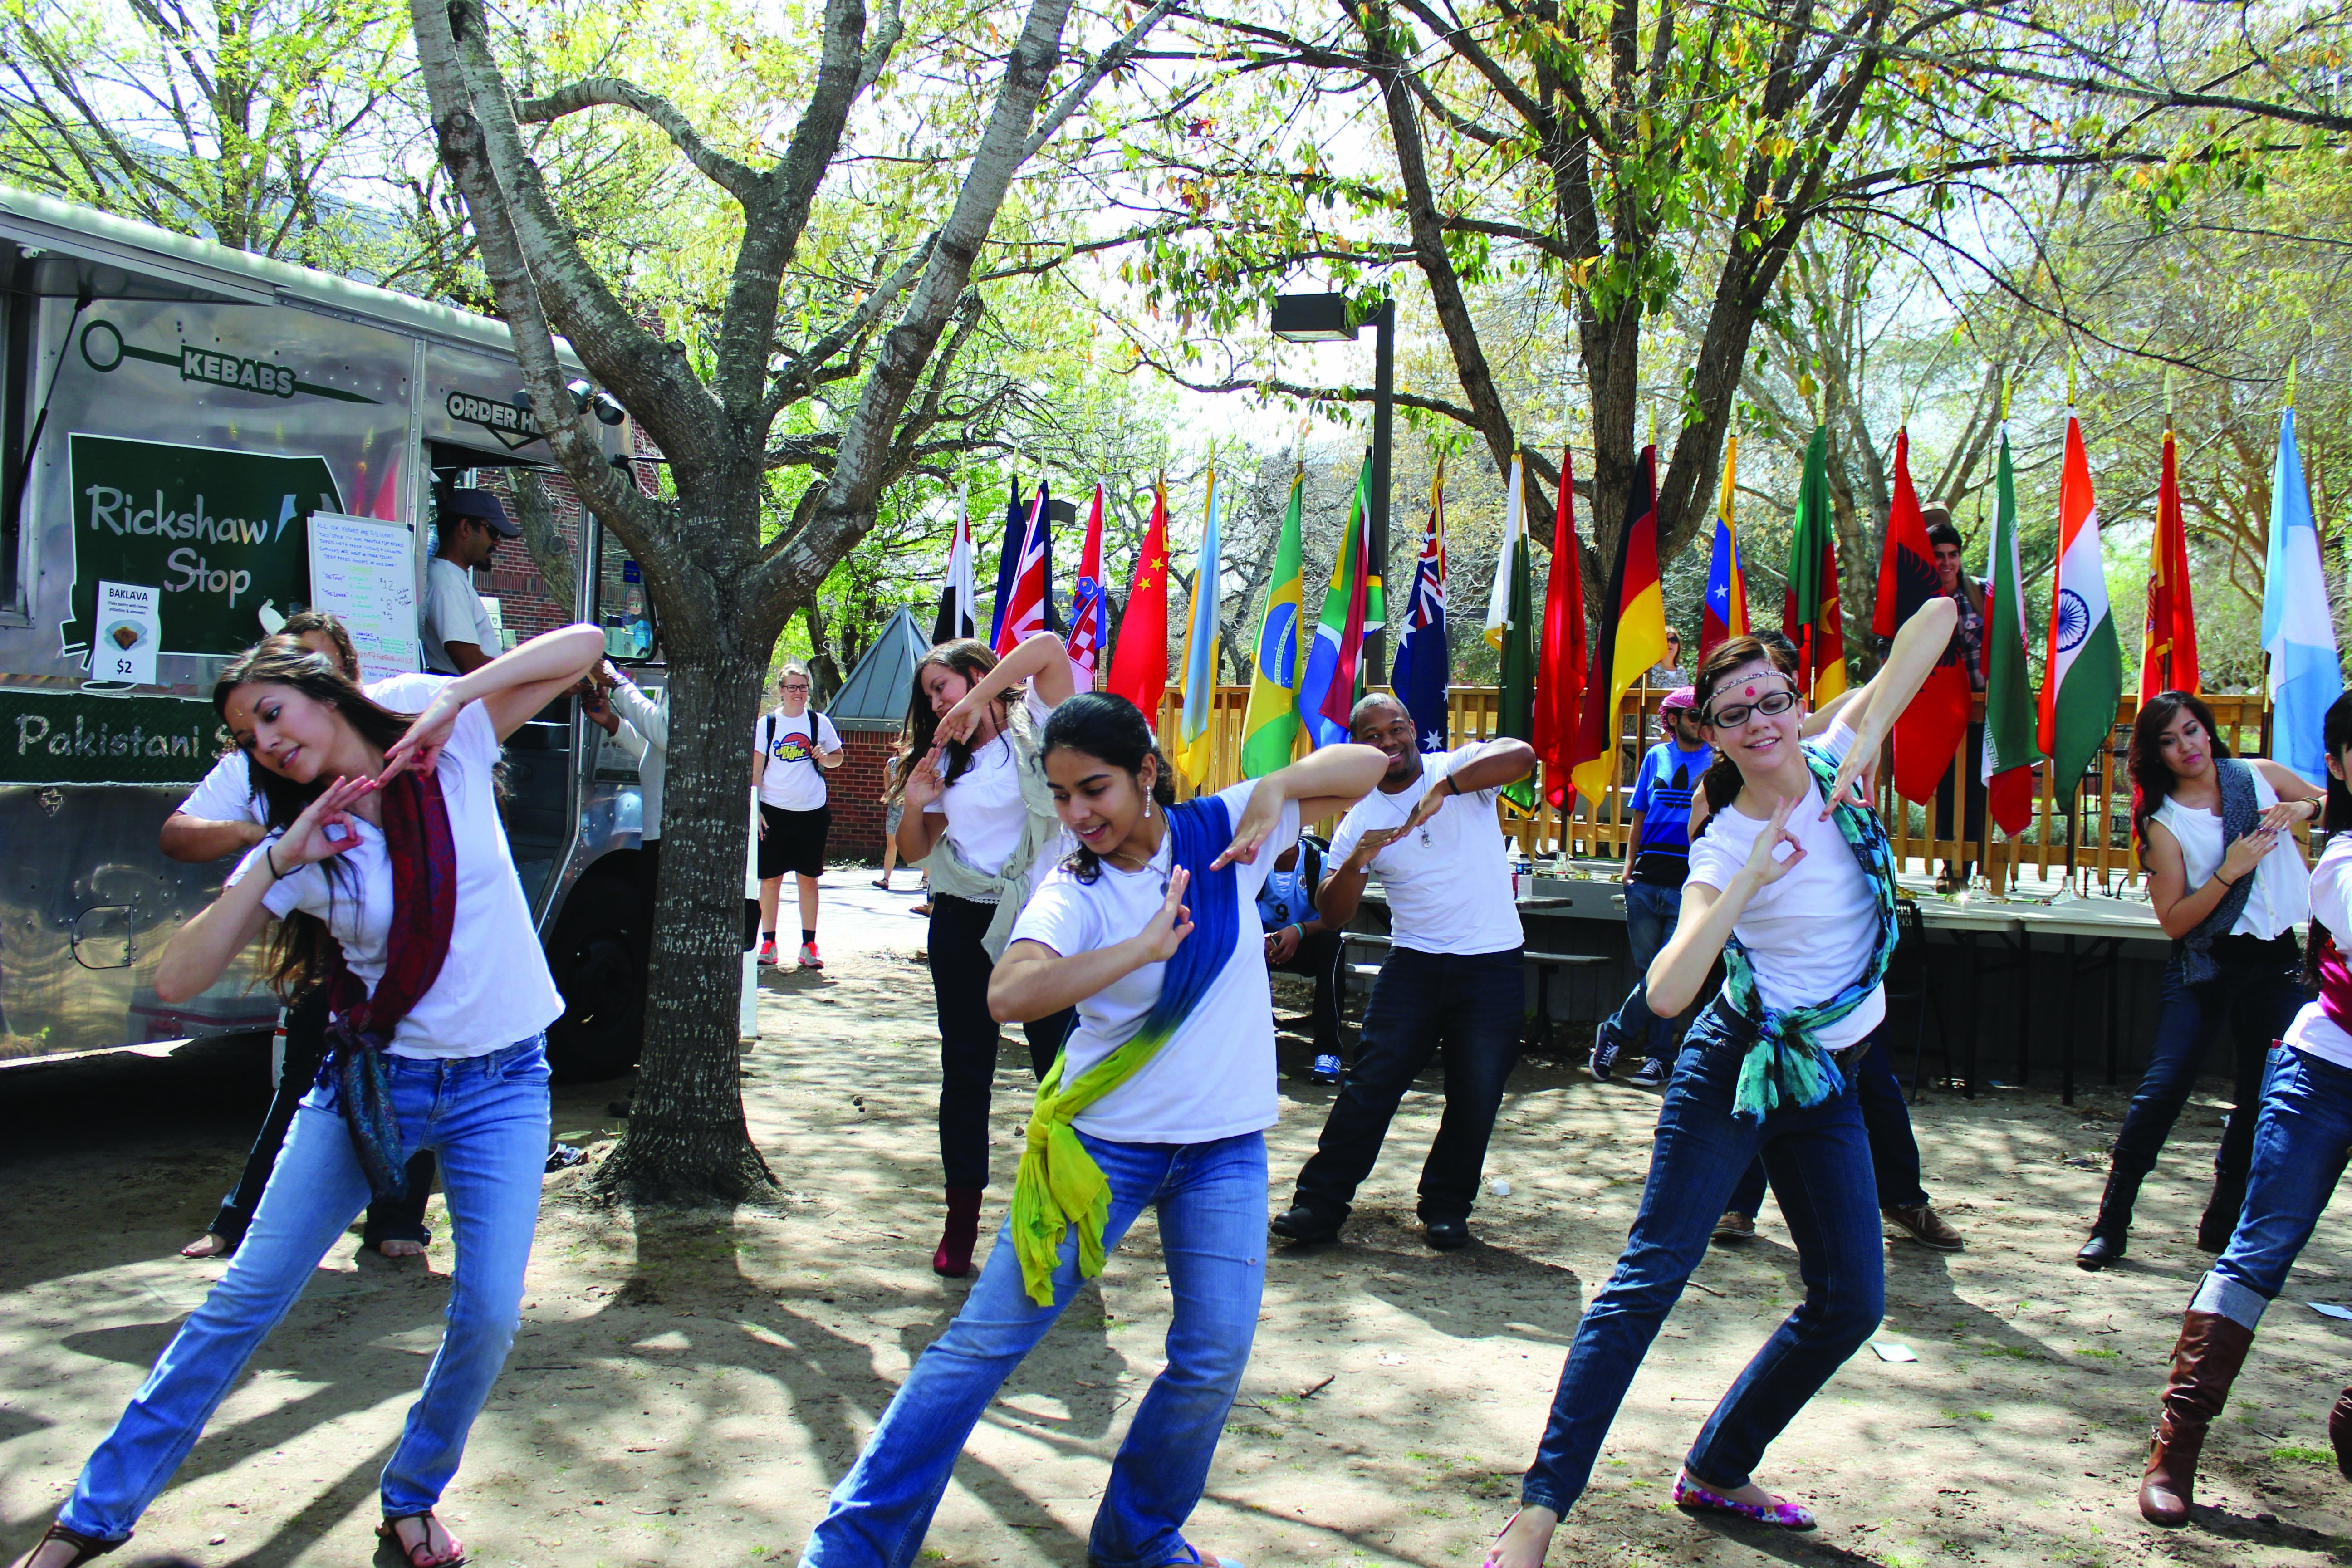 UIW celebrates spring with the International Festival of Colors